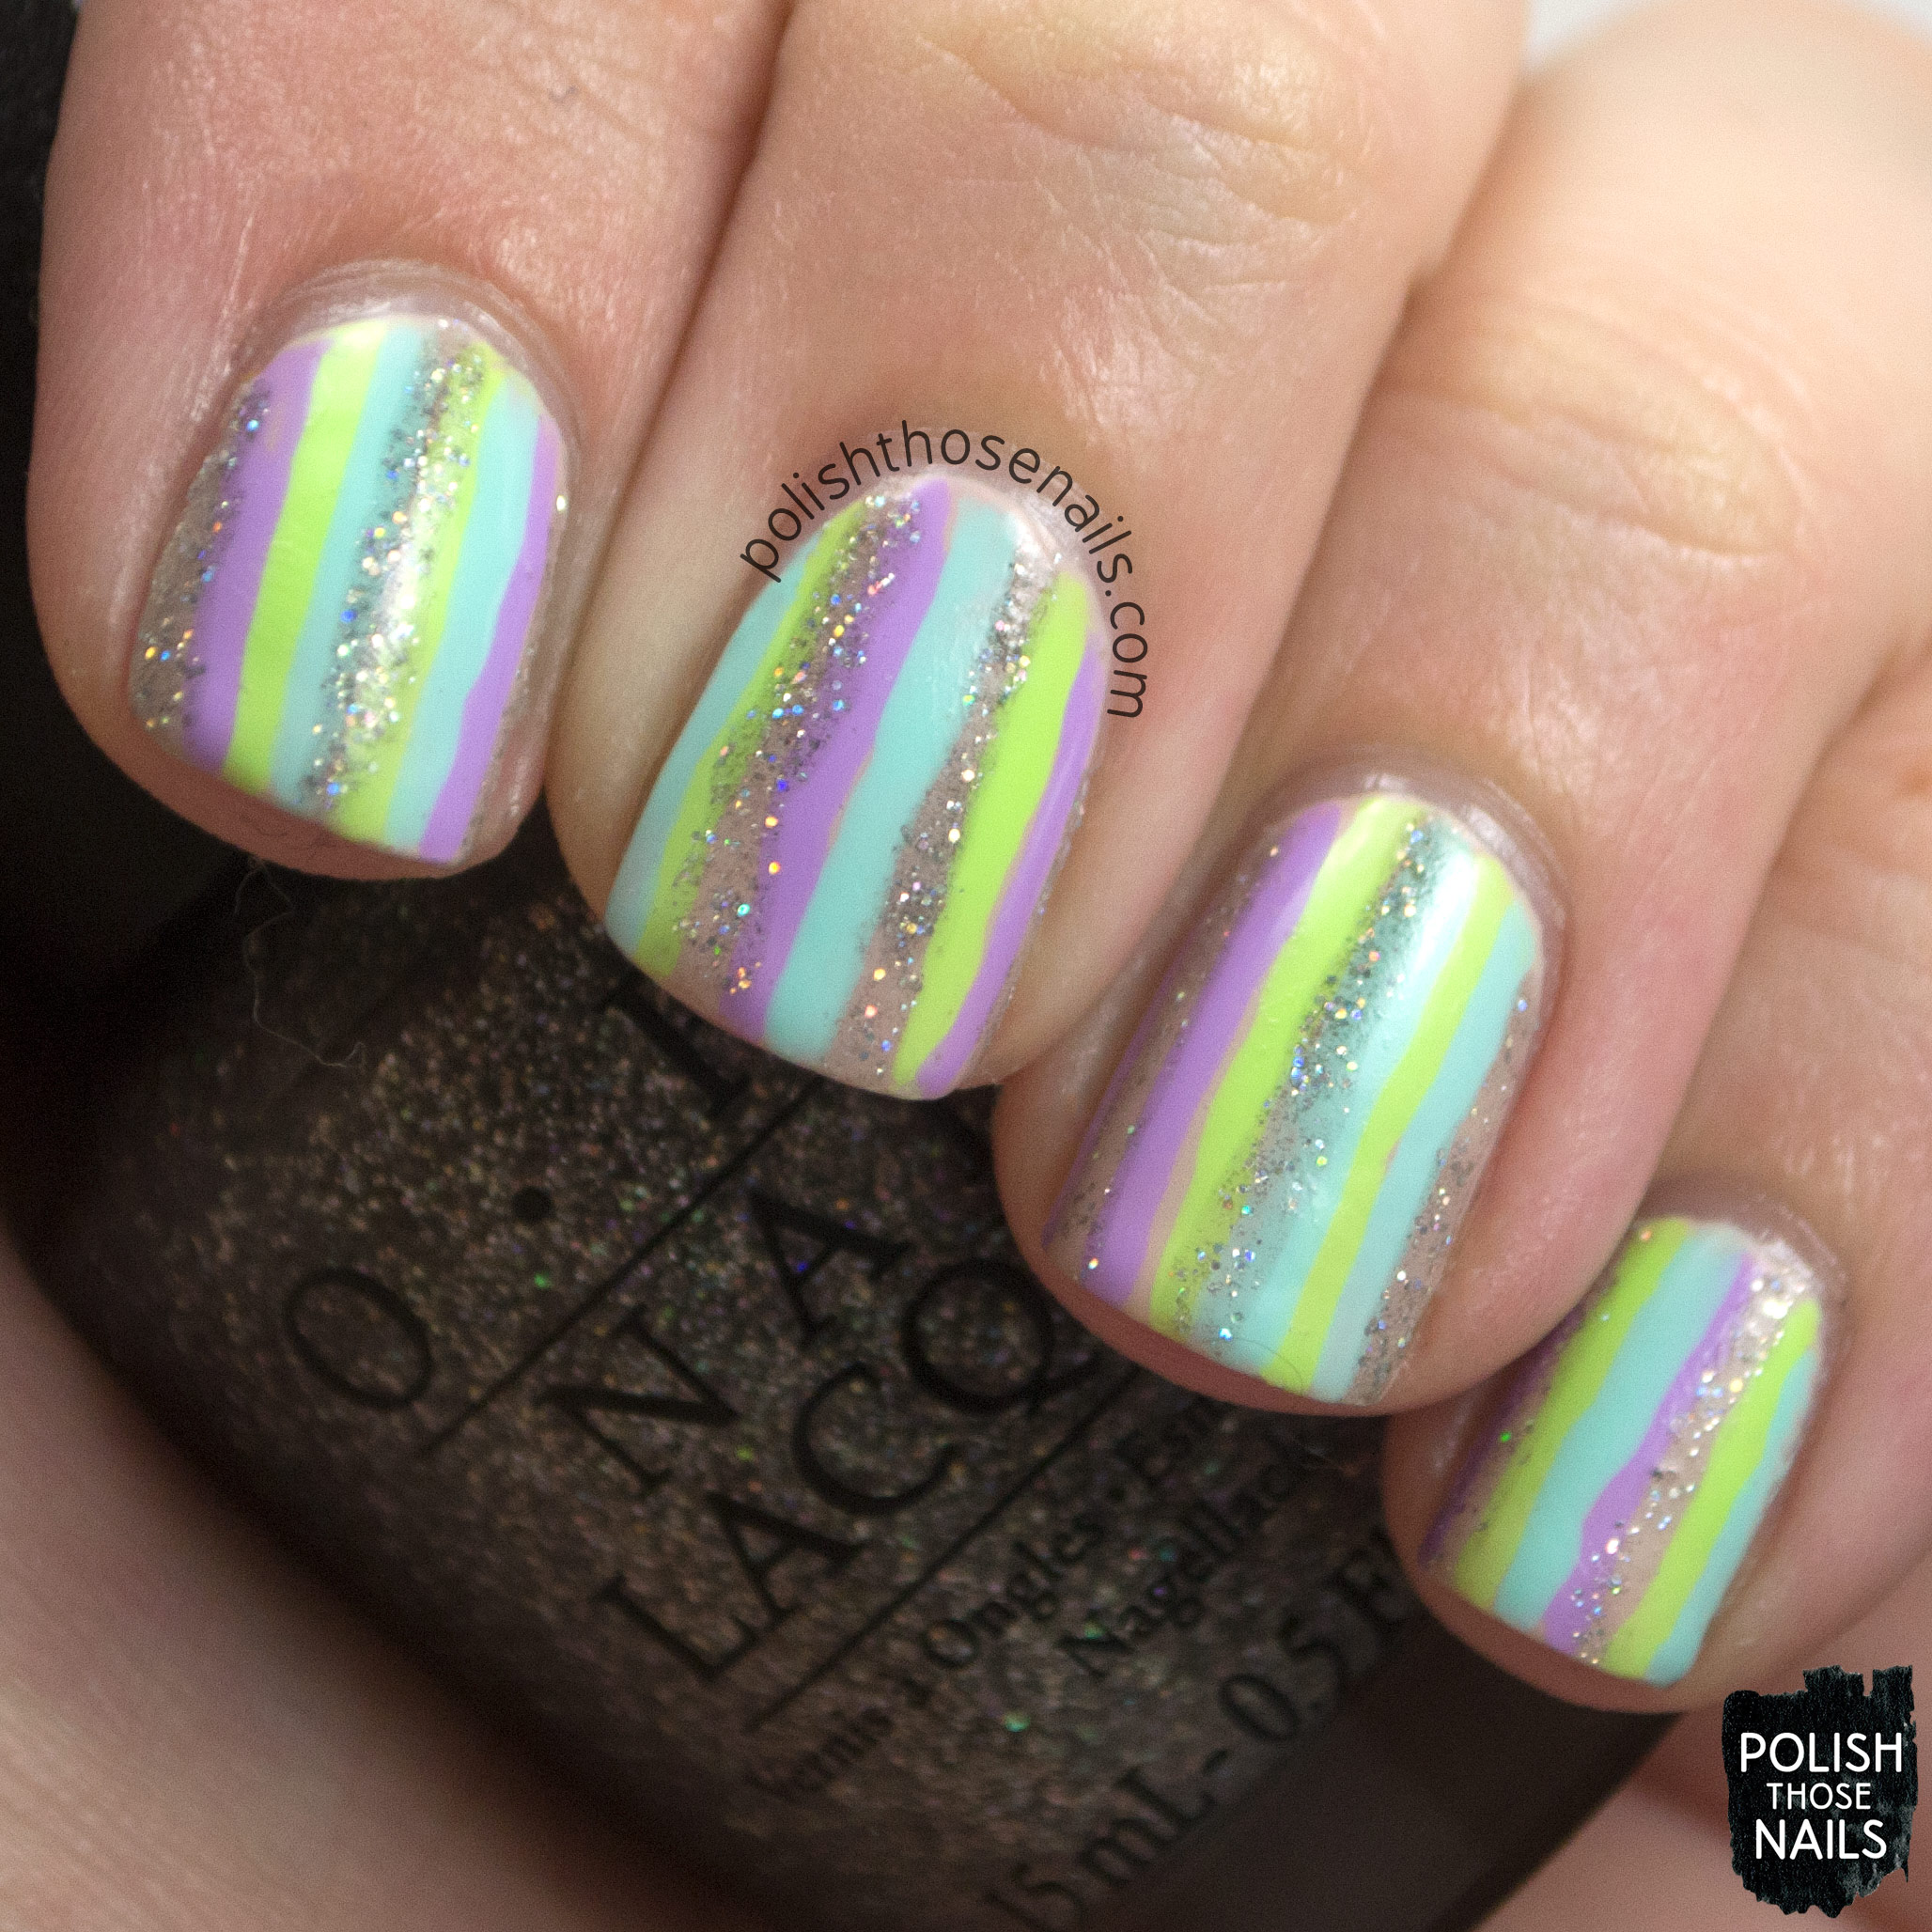 Concrete And Nail Polish Striped Nail Art: Striped Pastels • Polish Those Nails